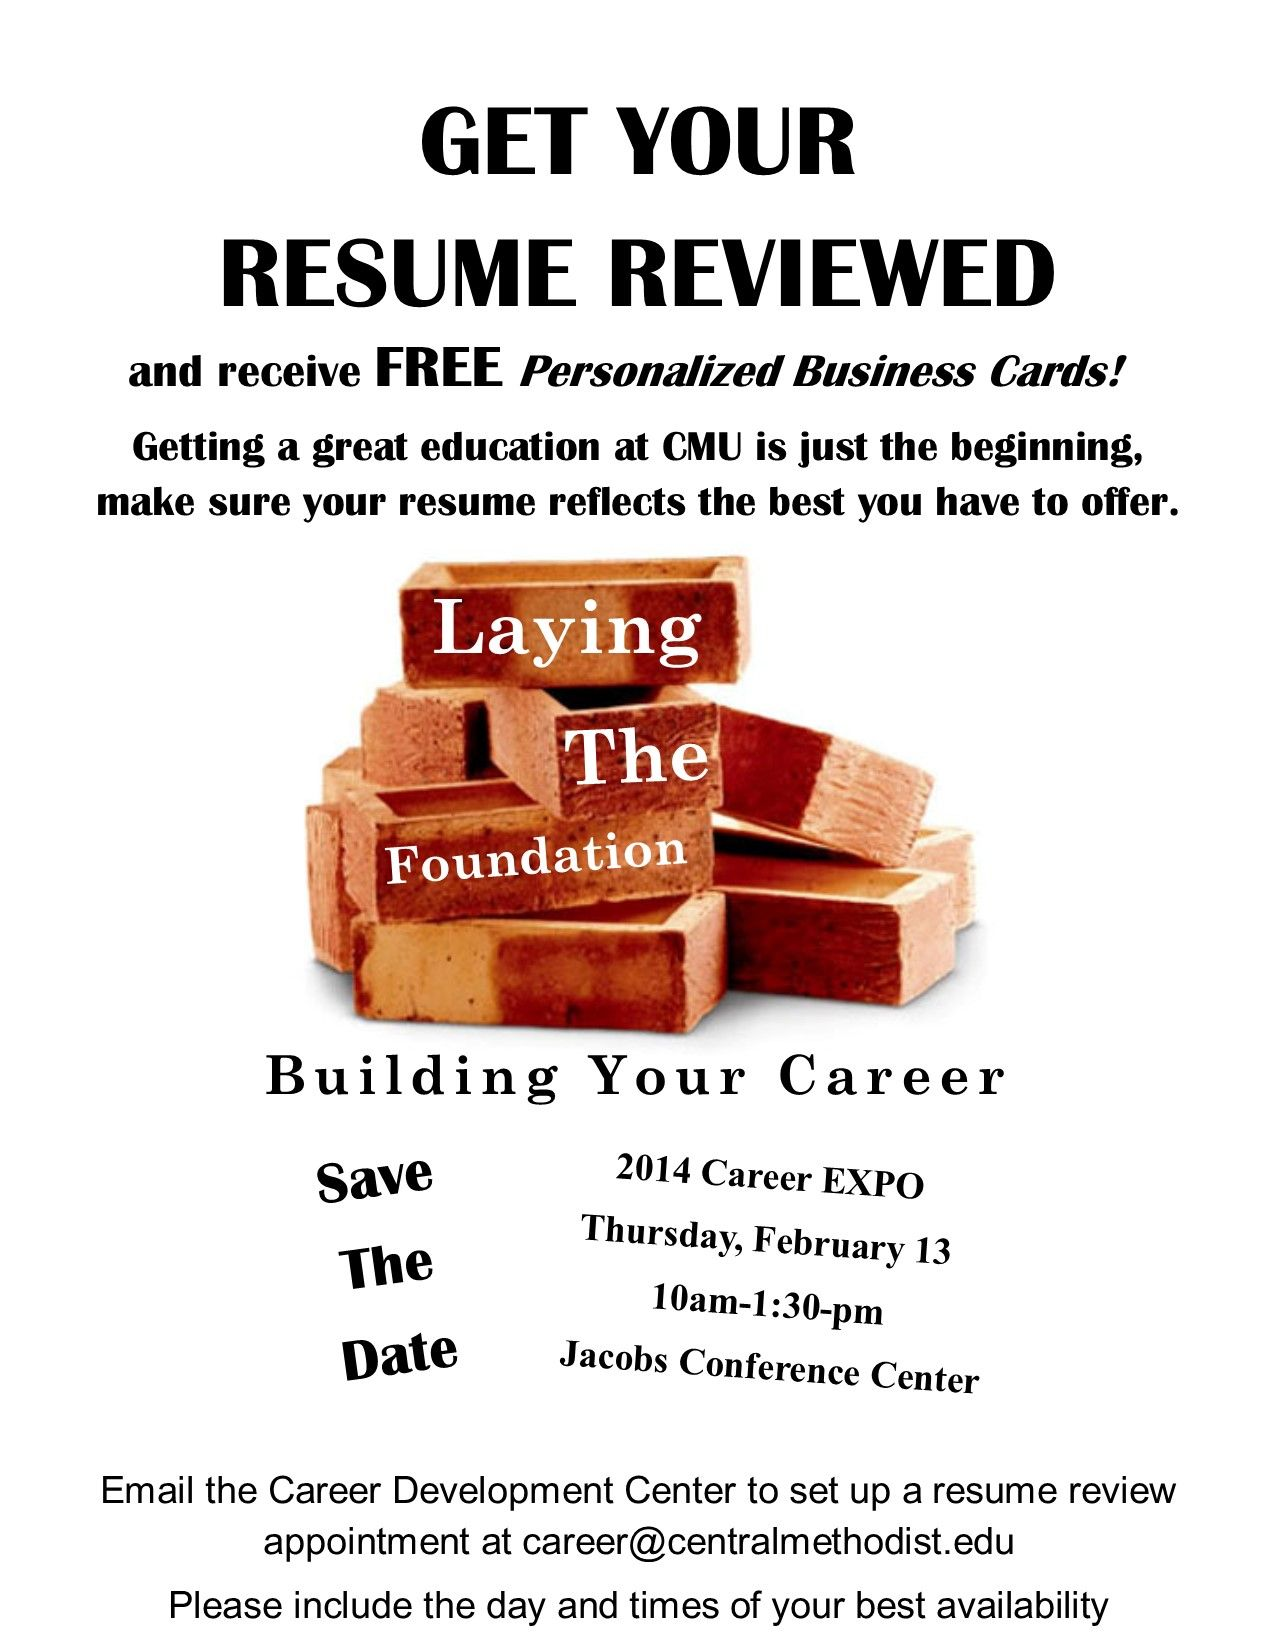 Resume Review Pleasing Get Your Resume Reviewed And Receive Free Personalized Business